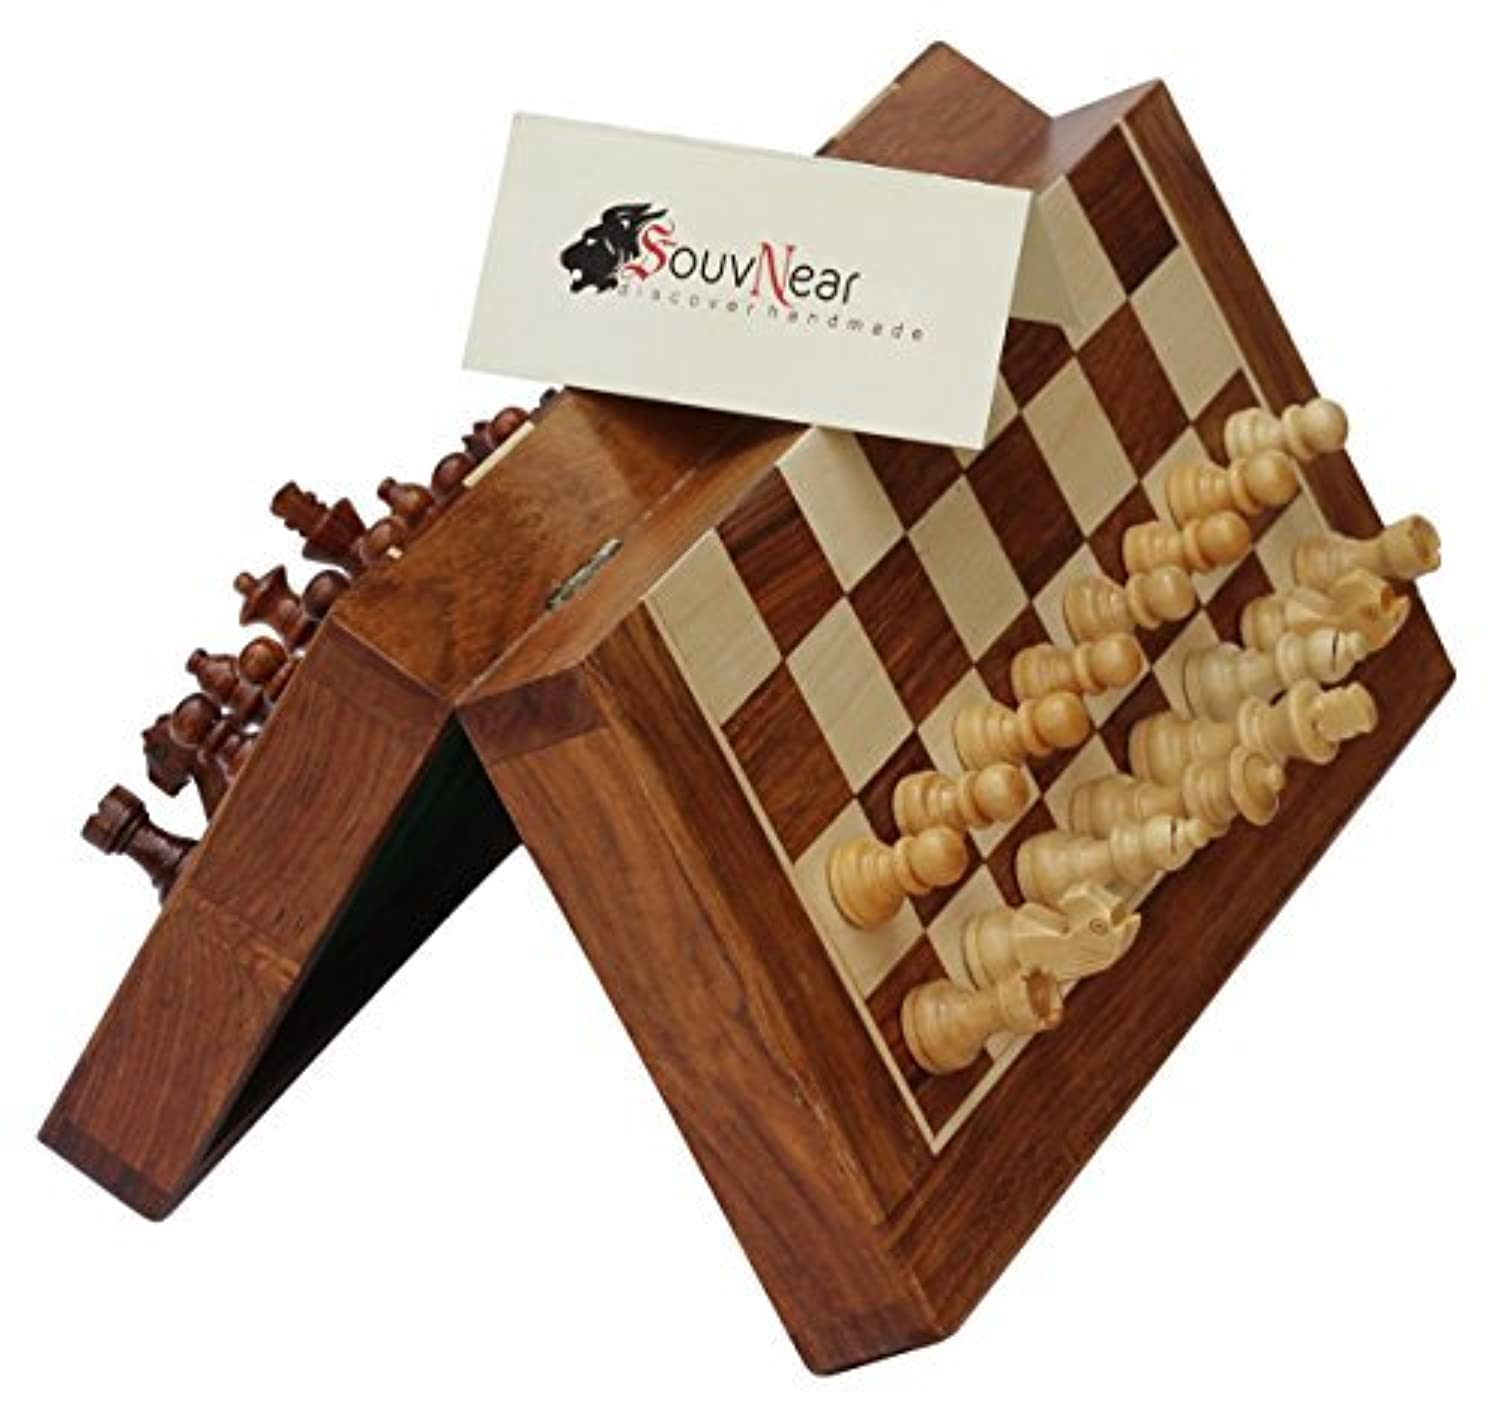 SouvNear Handmade Rosewood Chess Set - Classic 10' Inch Ultimate Wood Staunton Magnetic Travel Chess Game with Folding Storage Board in a Walnut Finish - Wooden Indoor Board Game Family Gifts for All [並行輸入品]